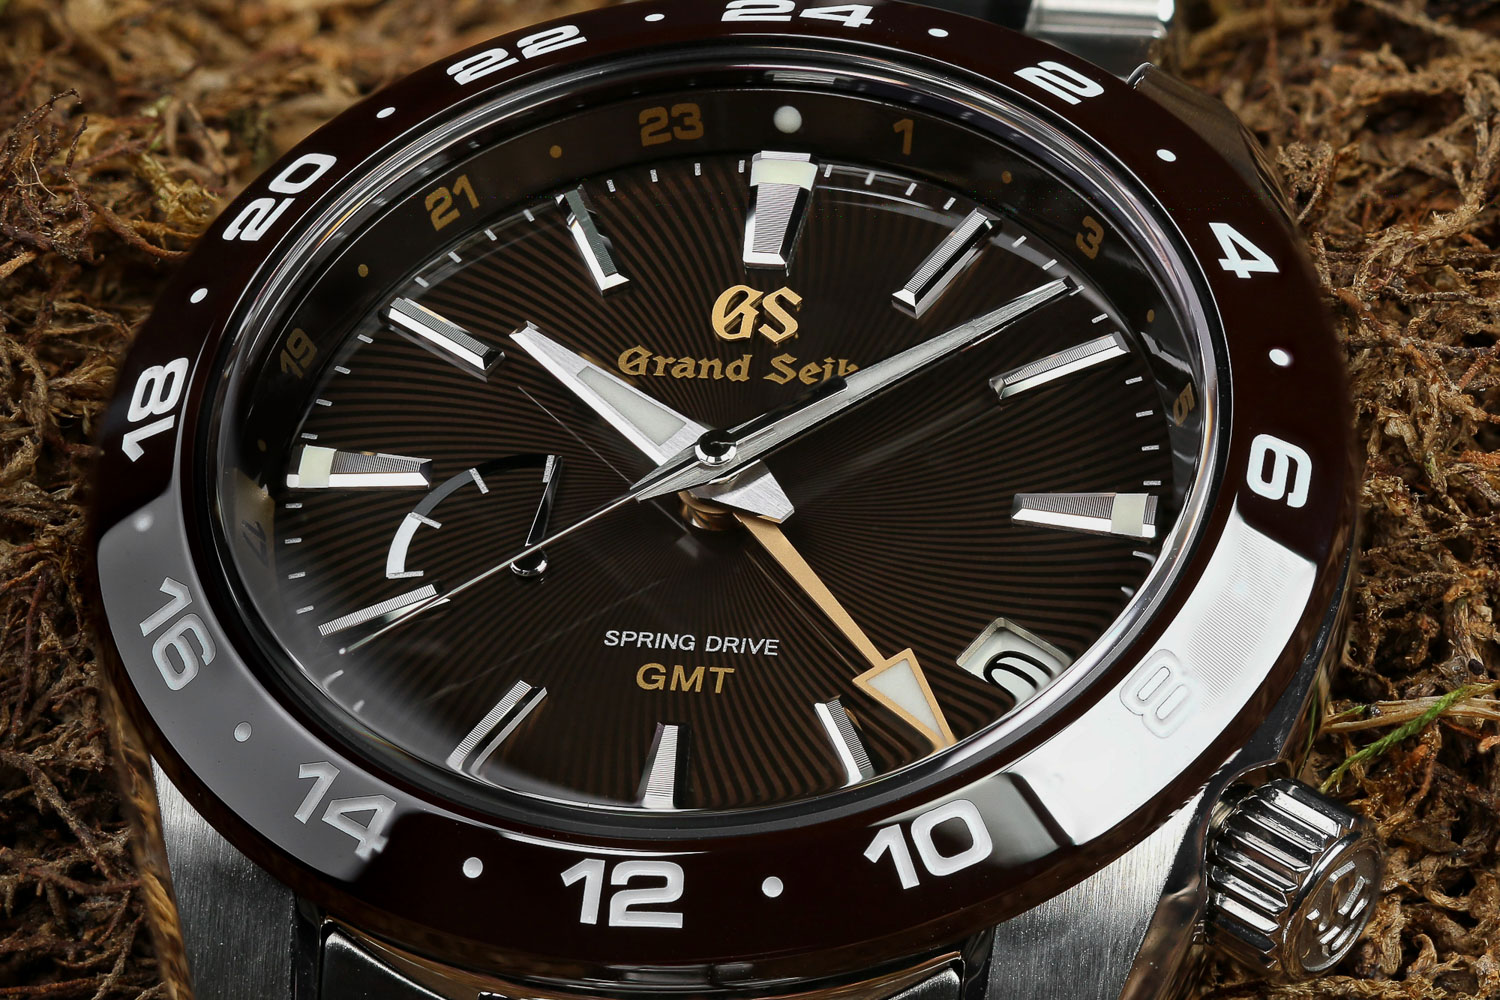 Grand Seiko U.S. Celebrates Double Anniversaries with Limited Edition SBGE263